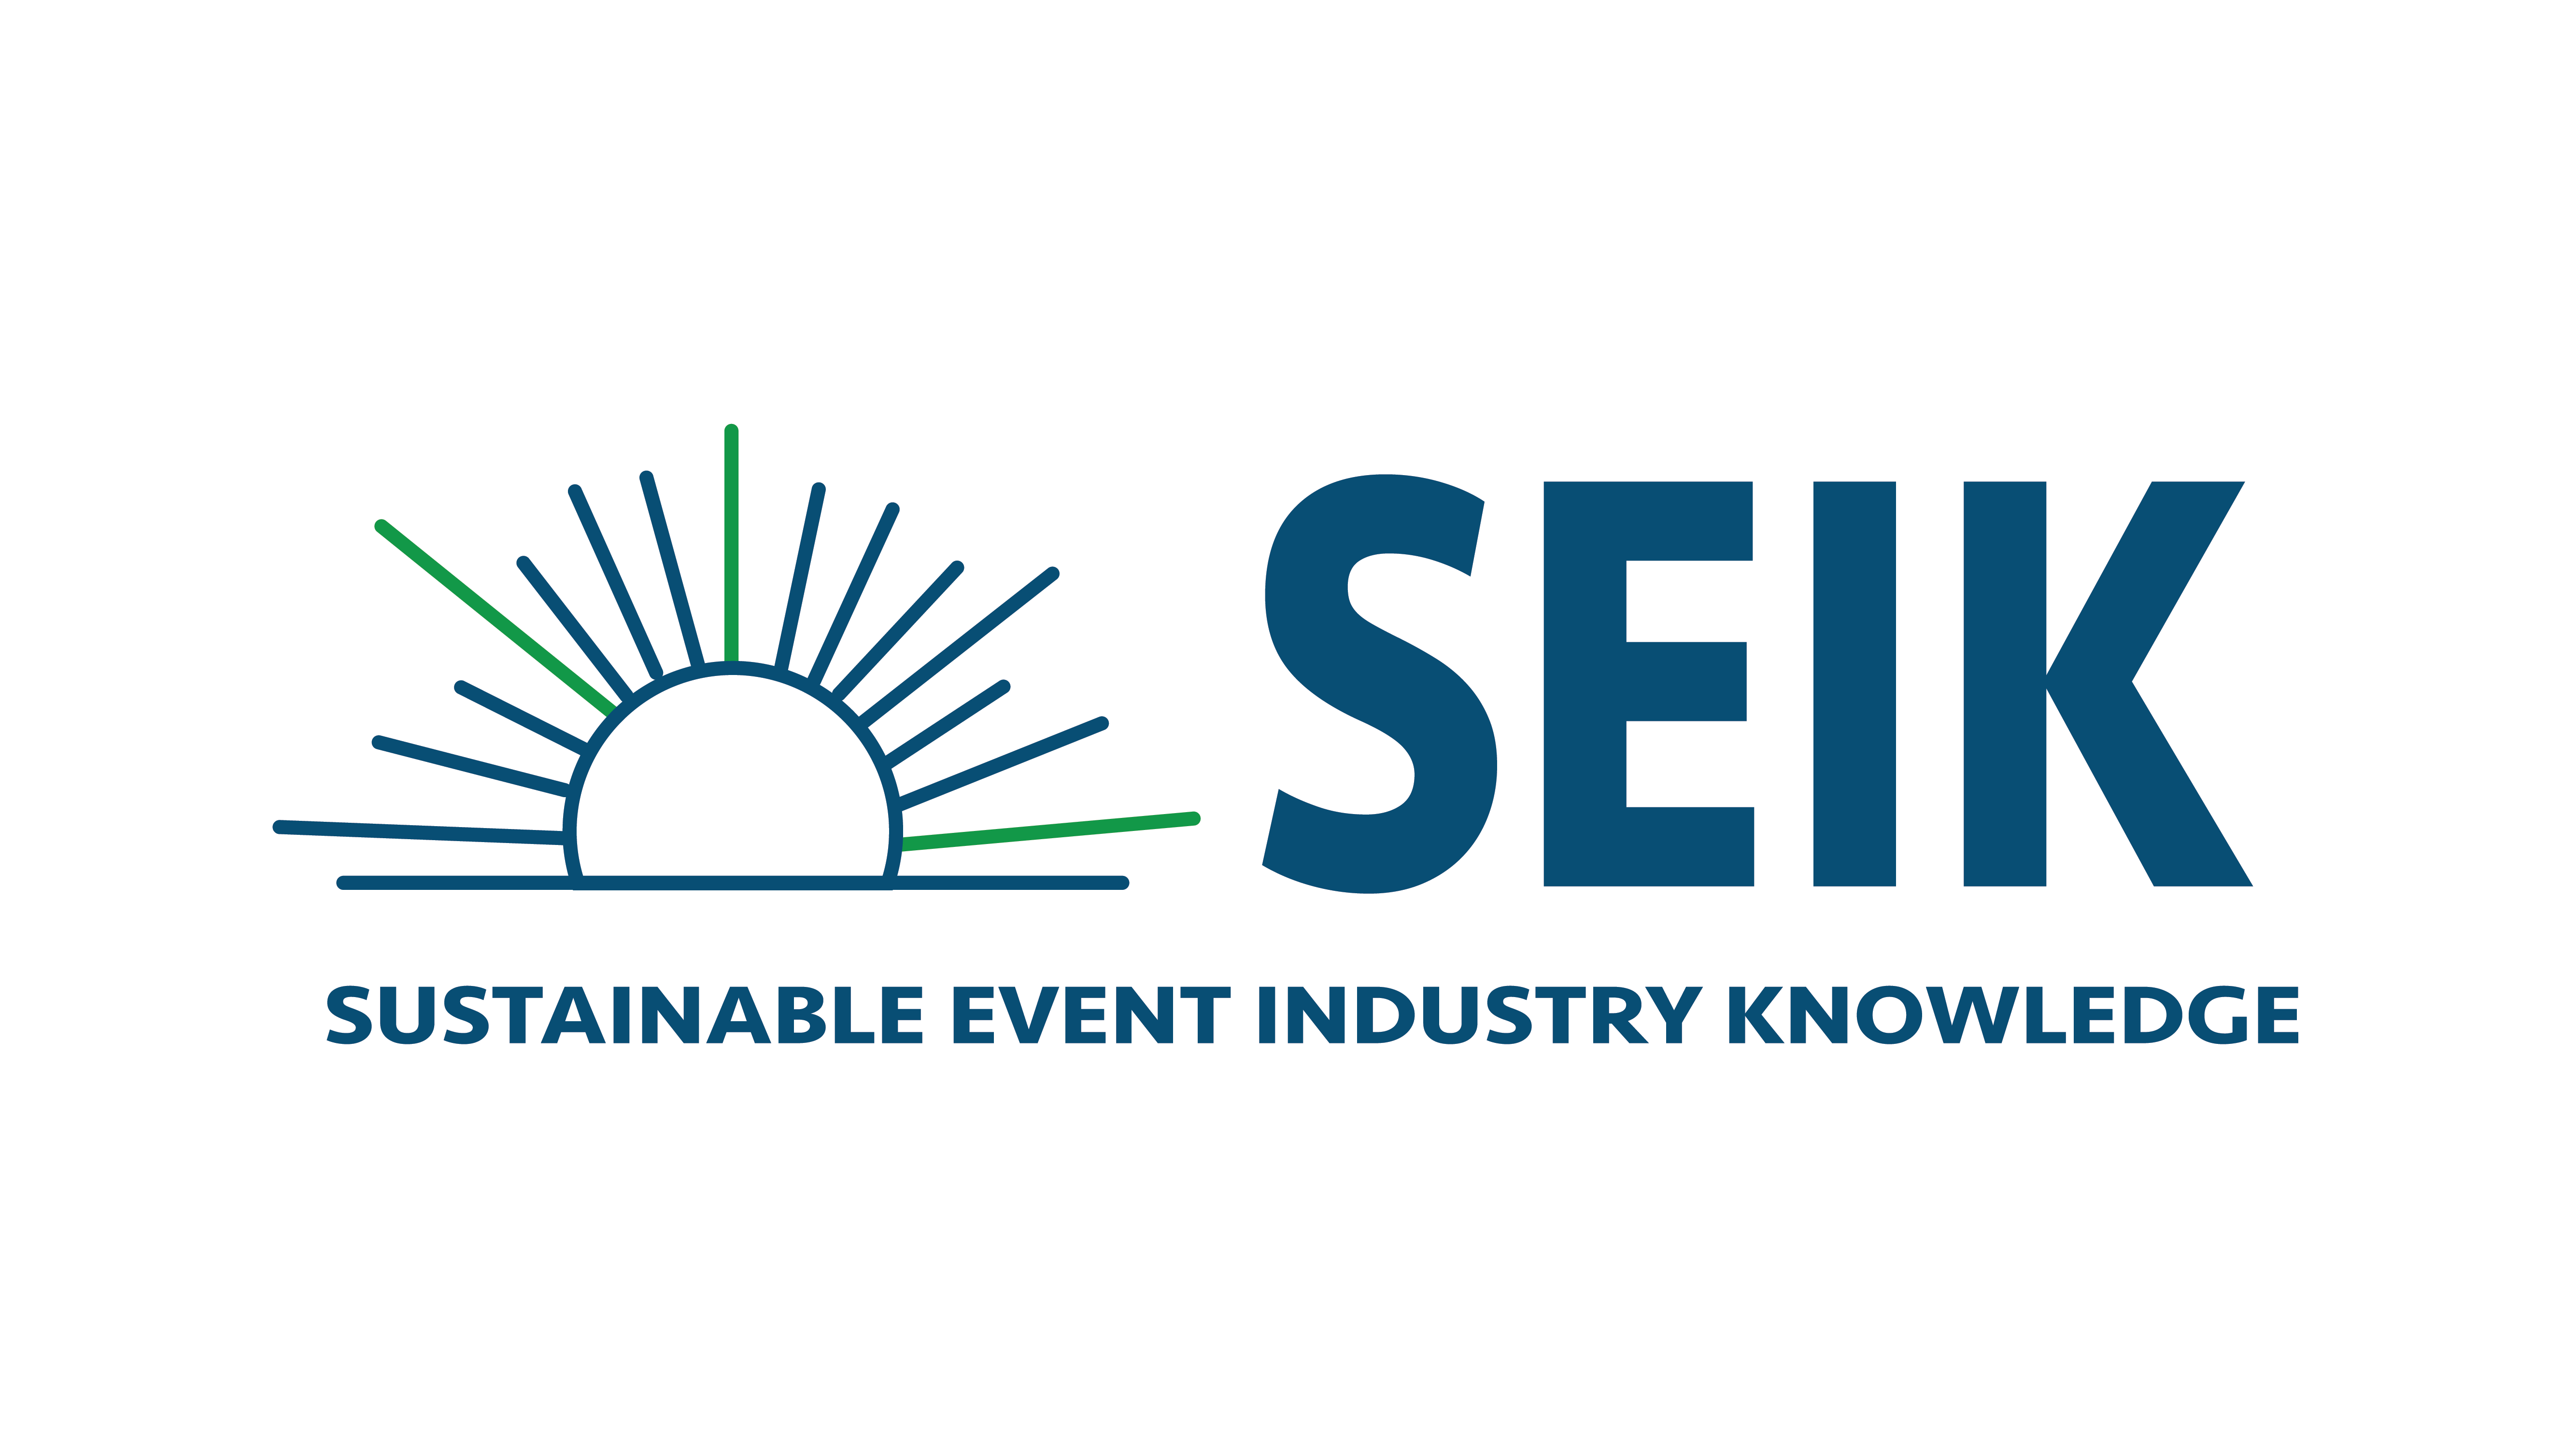 Update on TU Dublin's Sustainable Event Industry Knowledge (SEIK) project